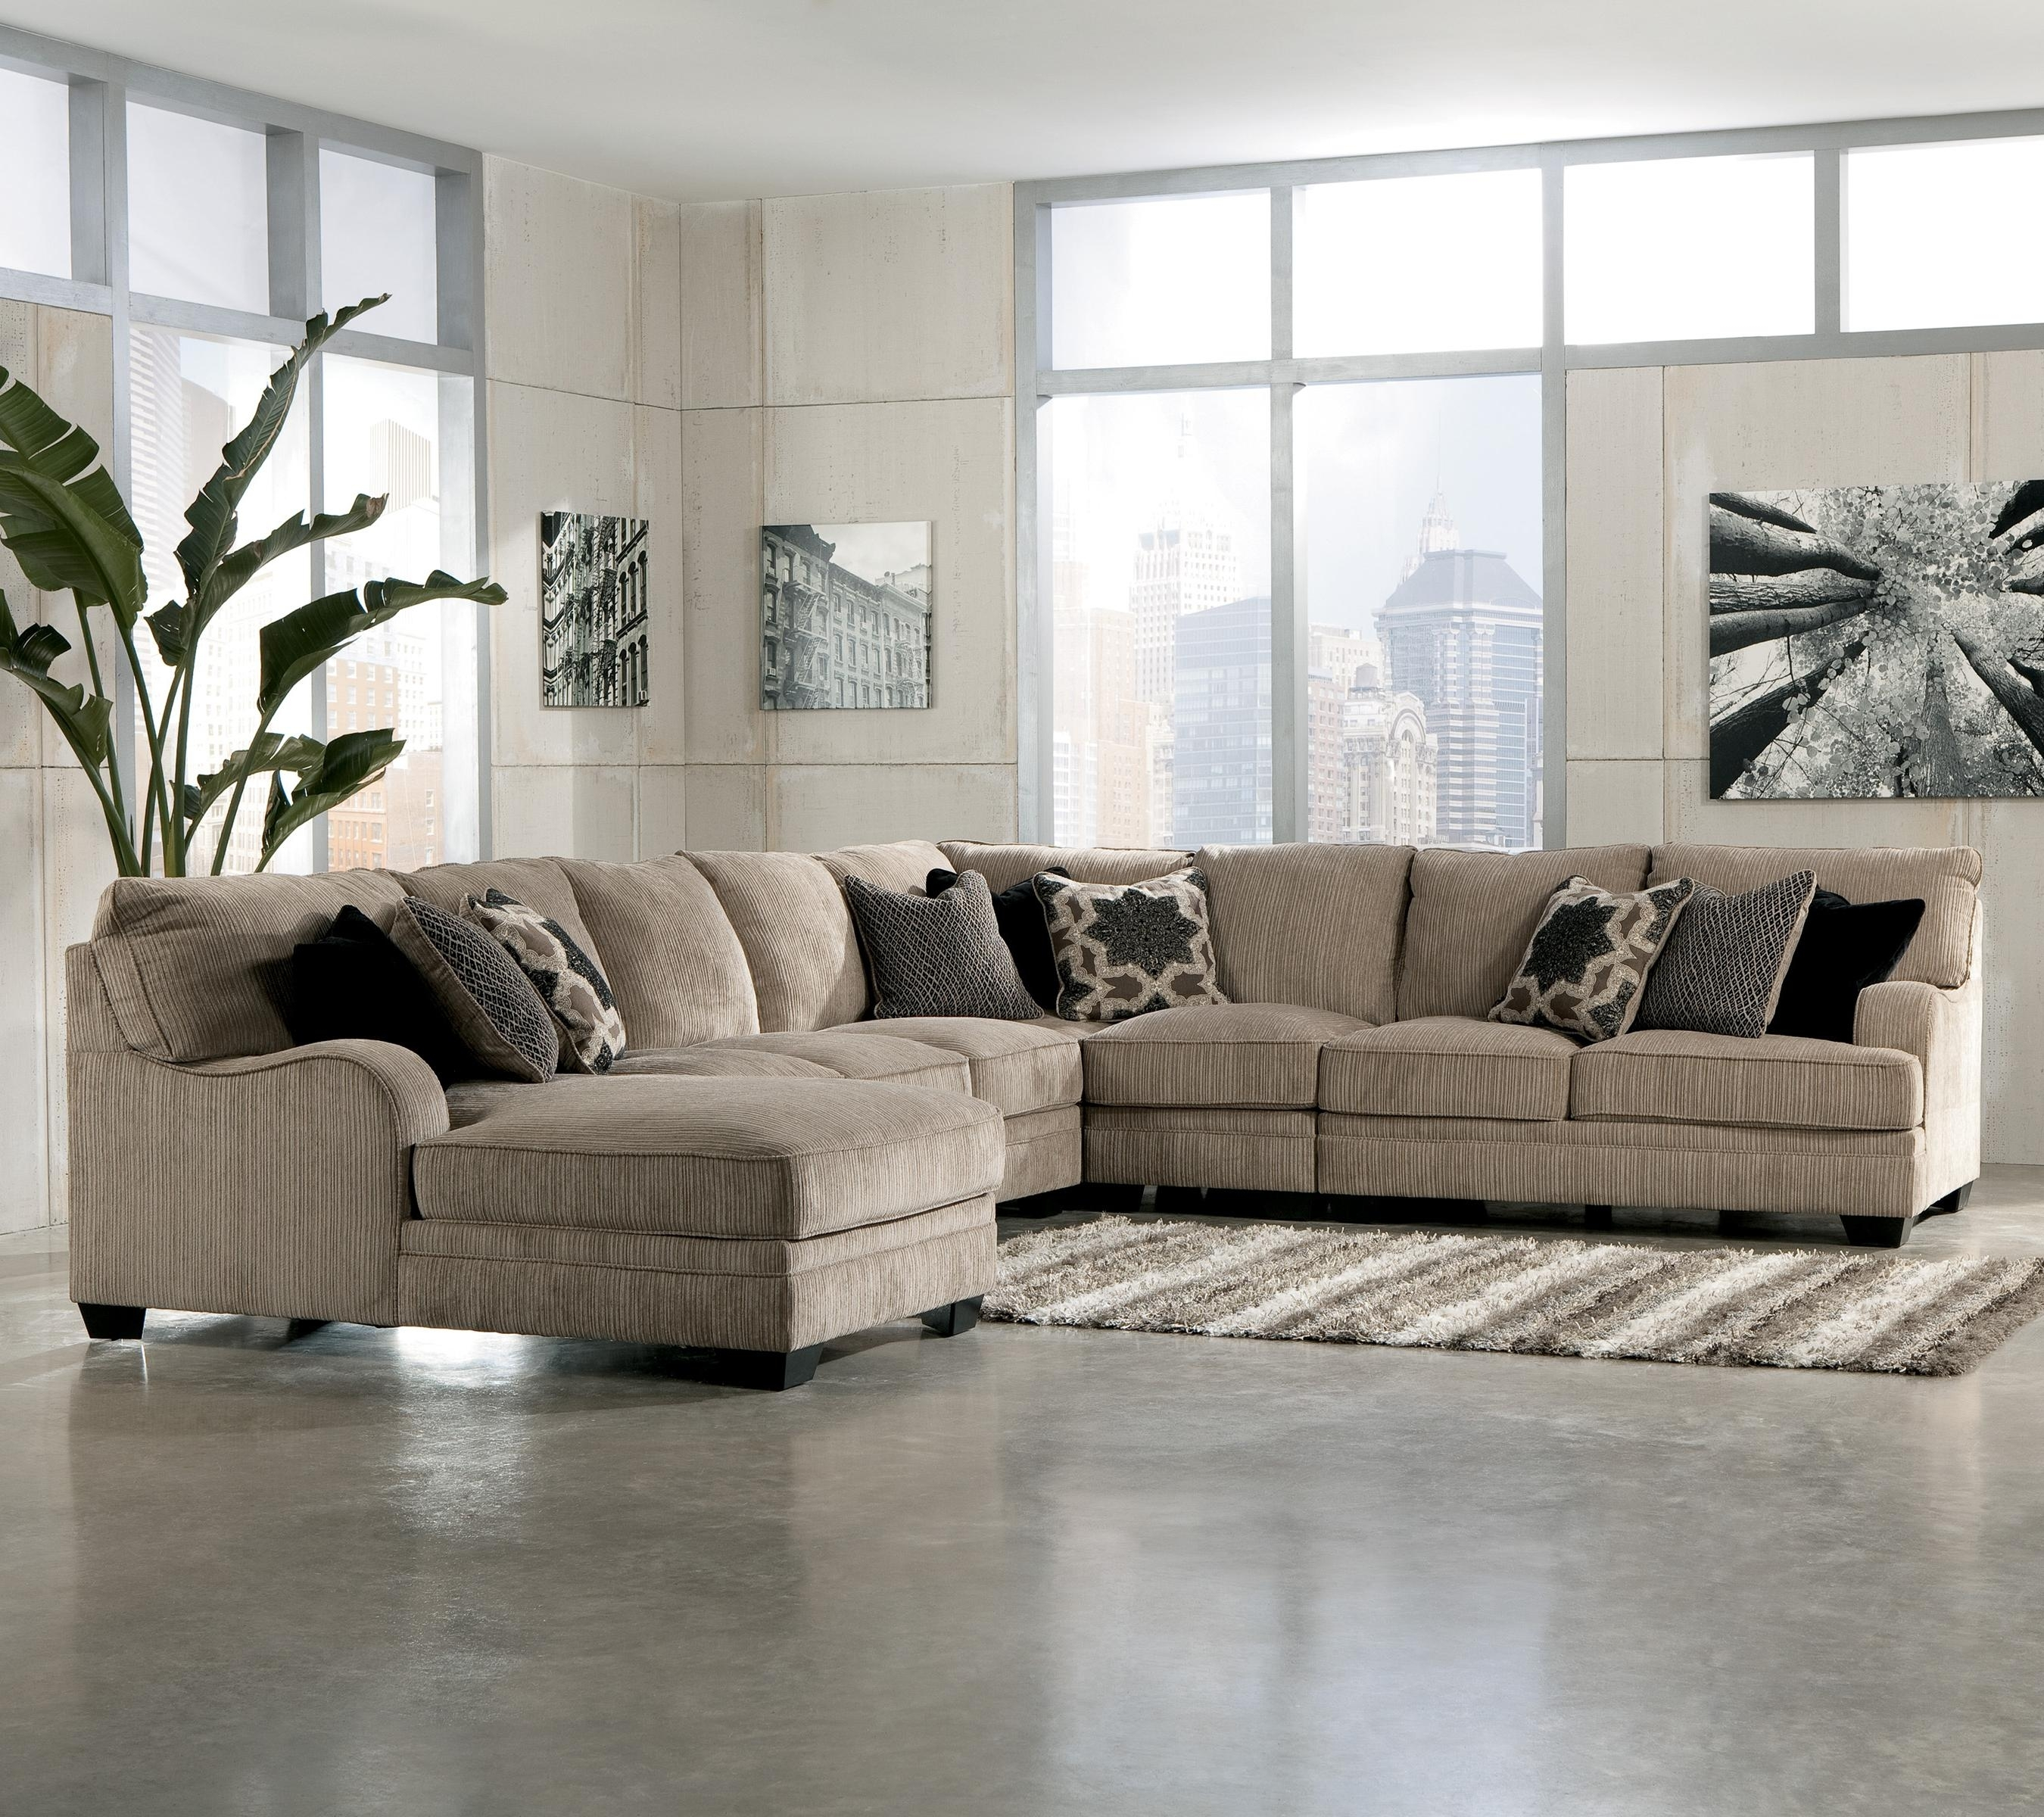 Furniture: Furniture Stores Jonesboro Ar | Jonesboro Furniture inside Jonesboro Ar Sectional Sofas (Image 4 of 10)